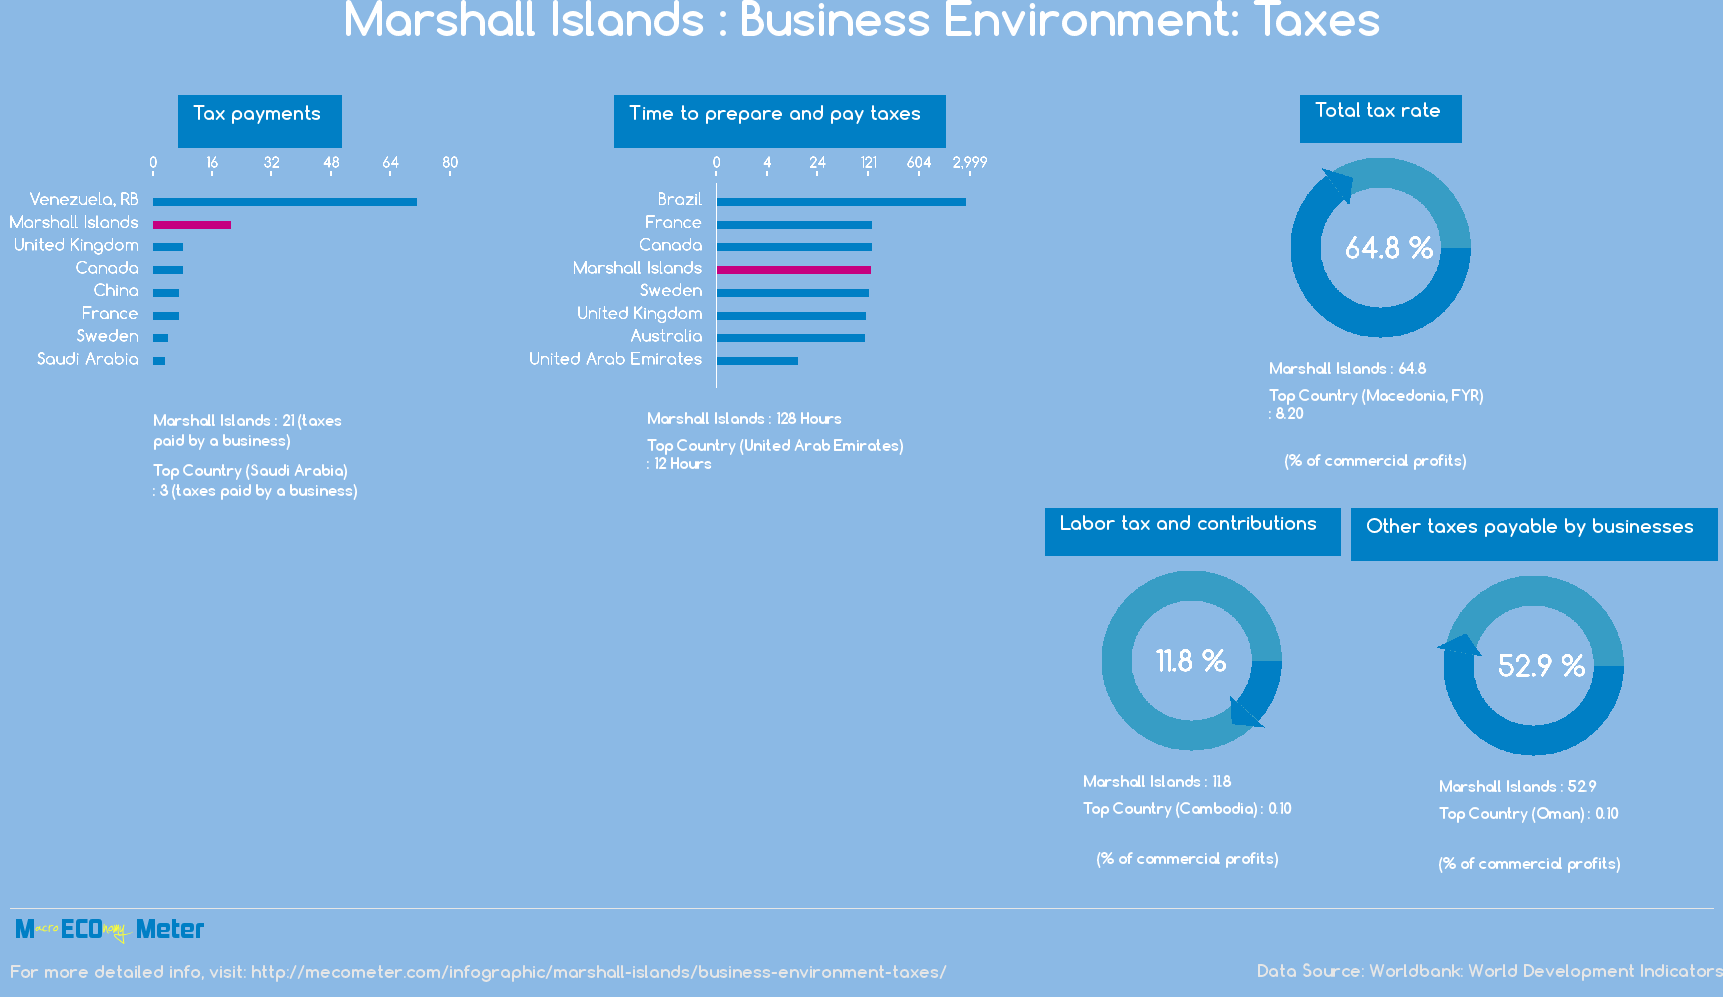 Marshall Islands : Business Environment: Taxes